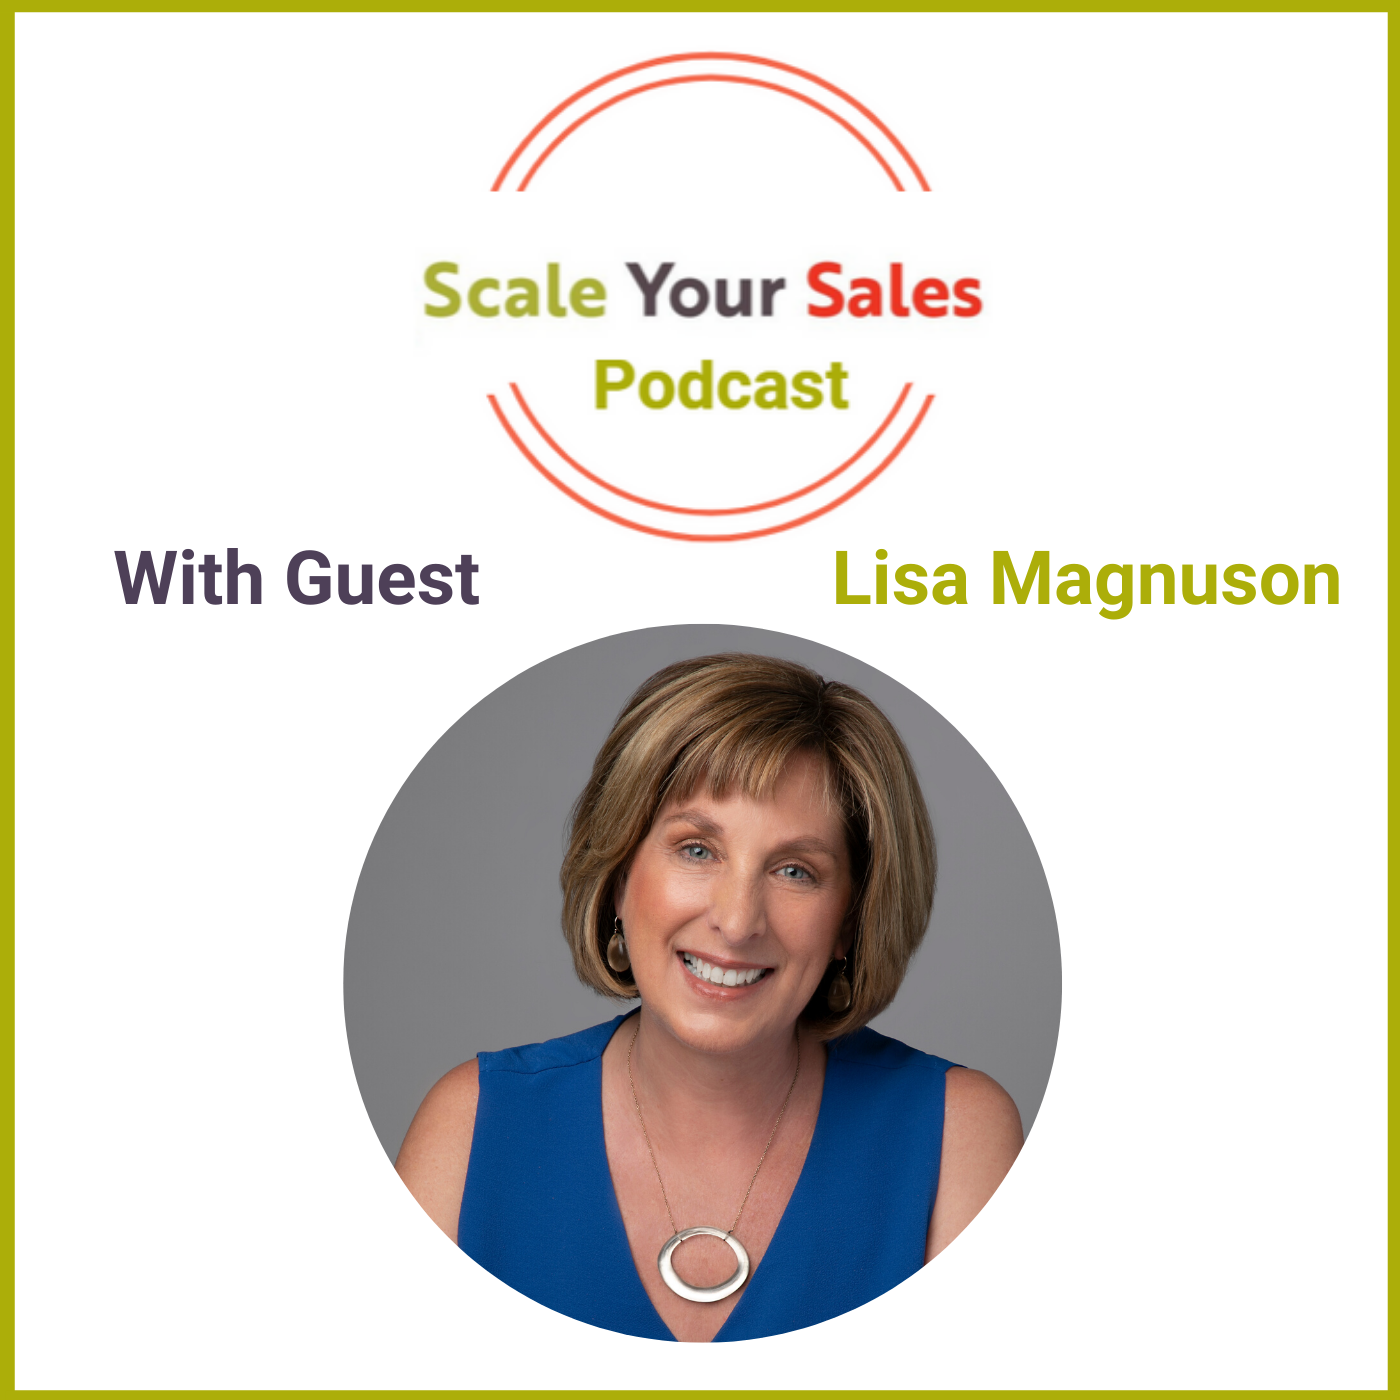 Episode 019 Lisa D Magnuson: Why You Must Get Fanatical About Pre-Call Planning